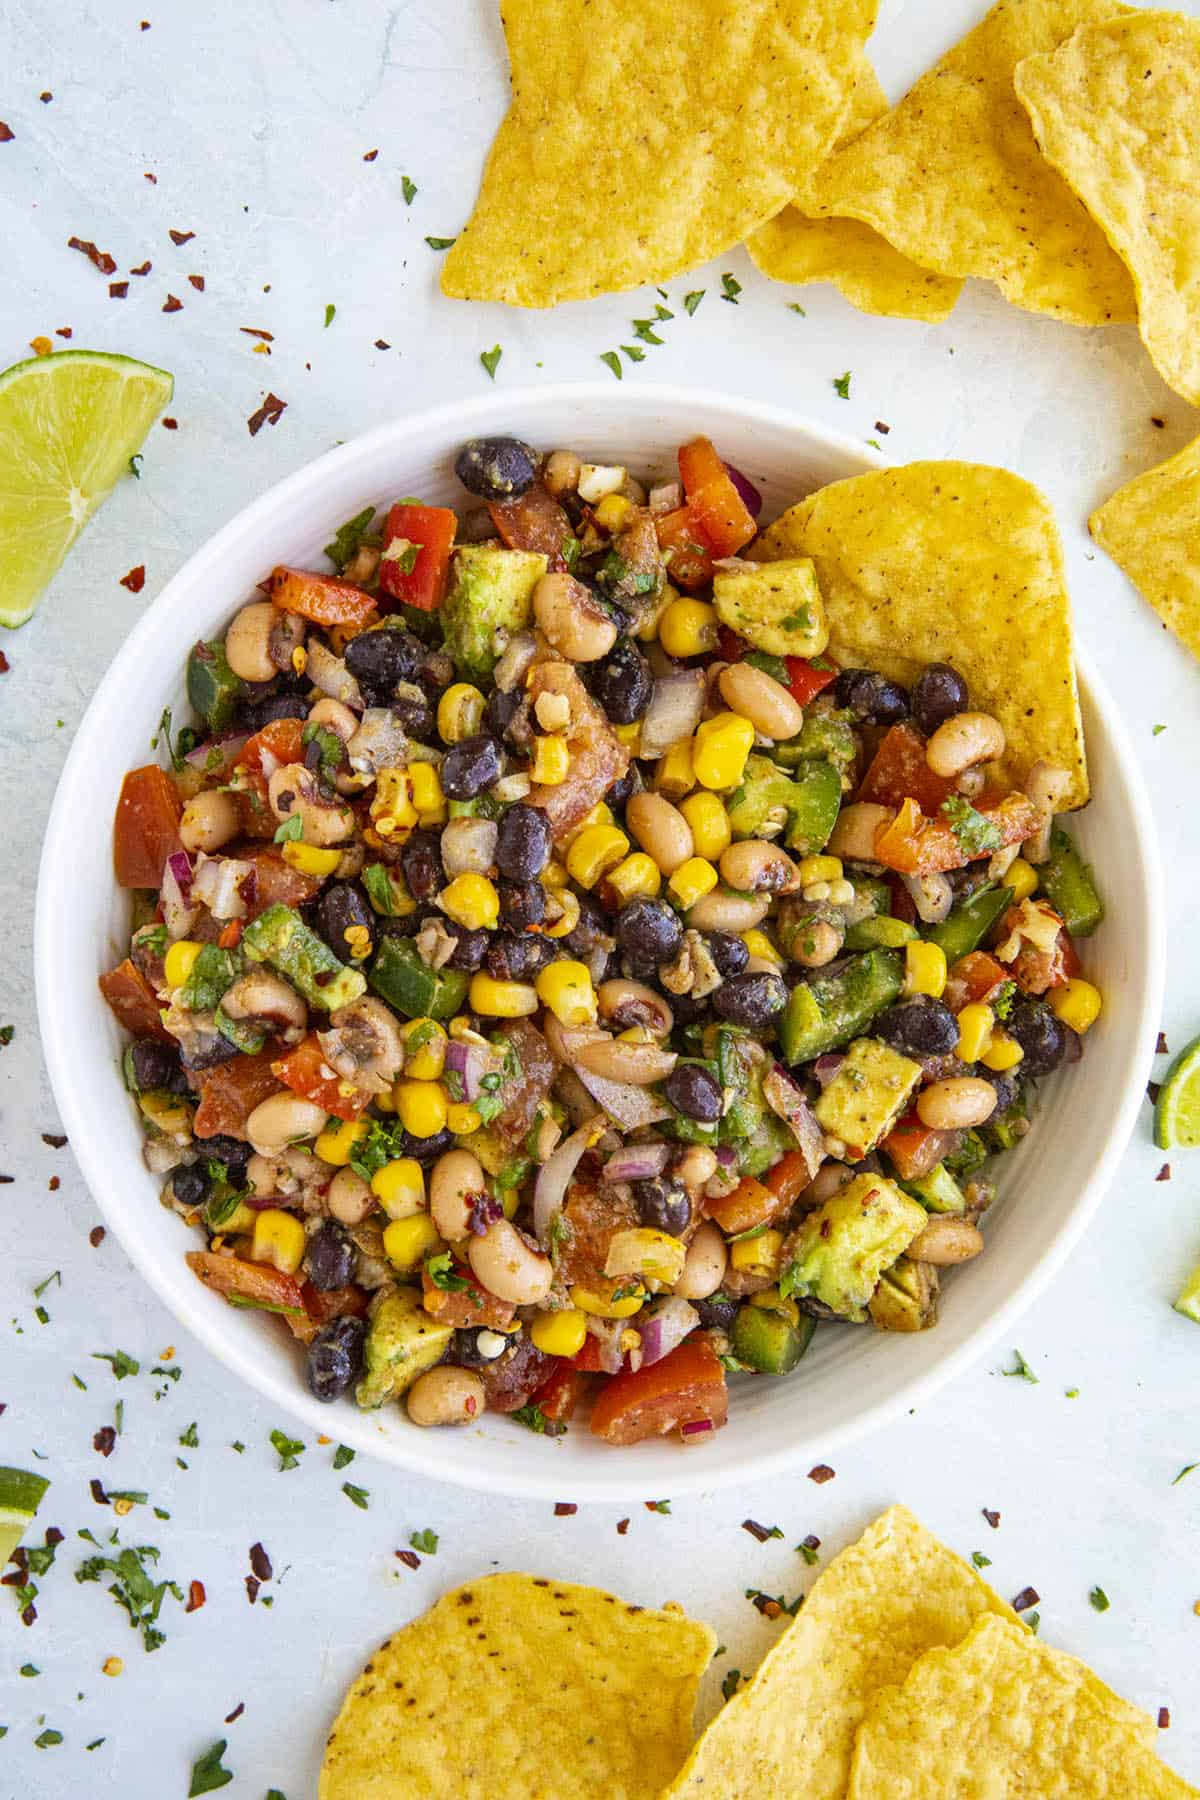 Cowboy Caviar ready to serve with crispy tortilla chips